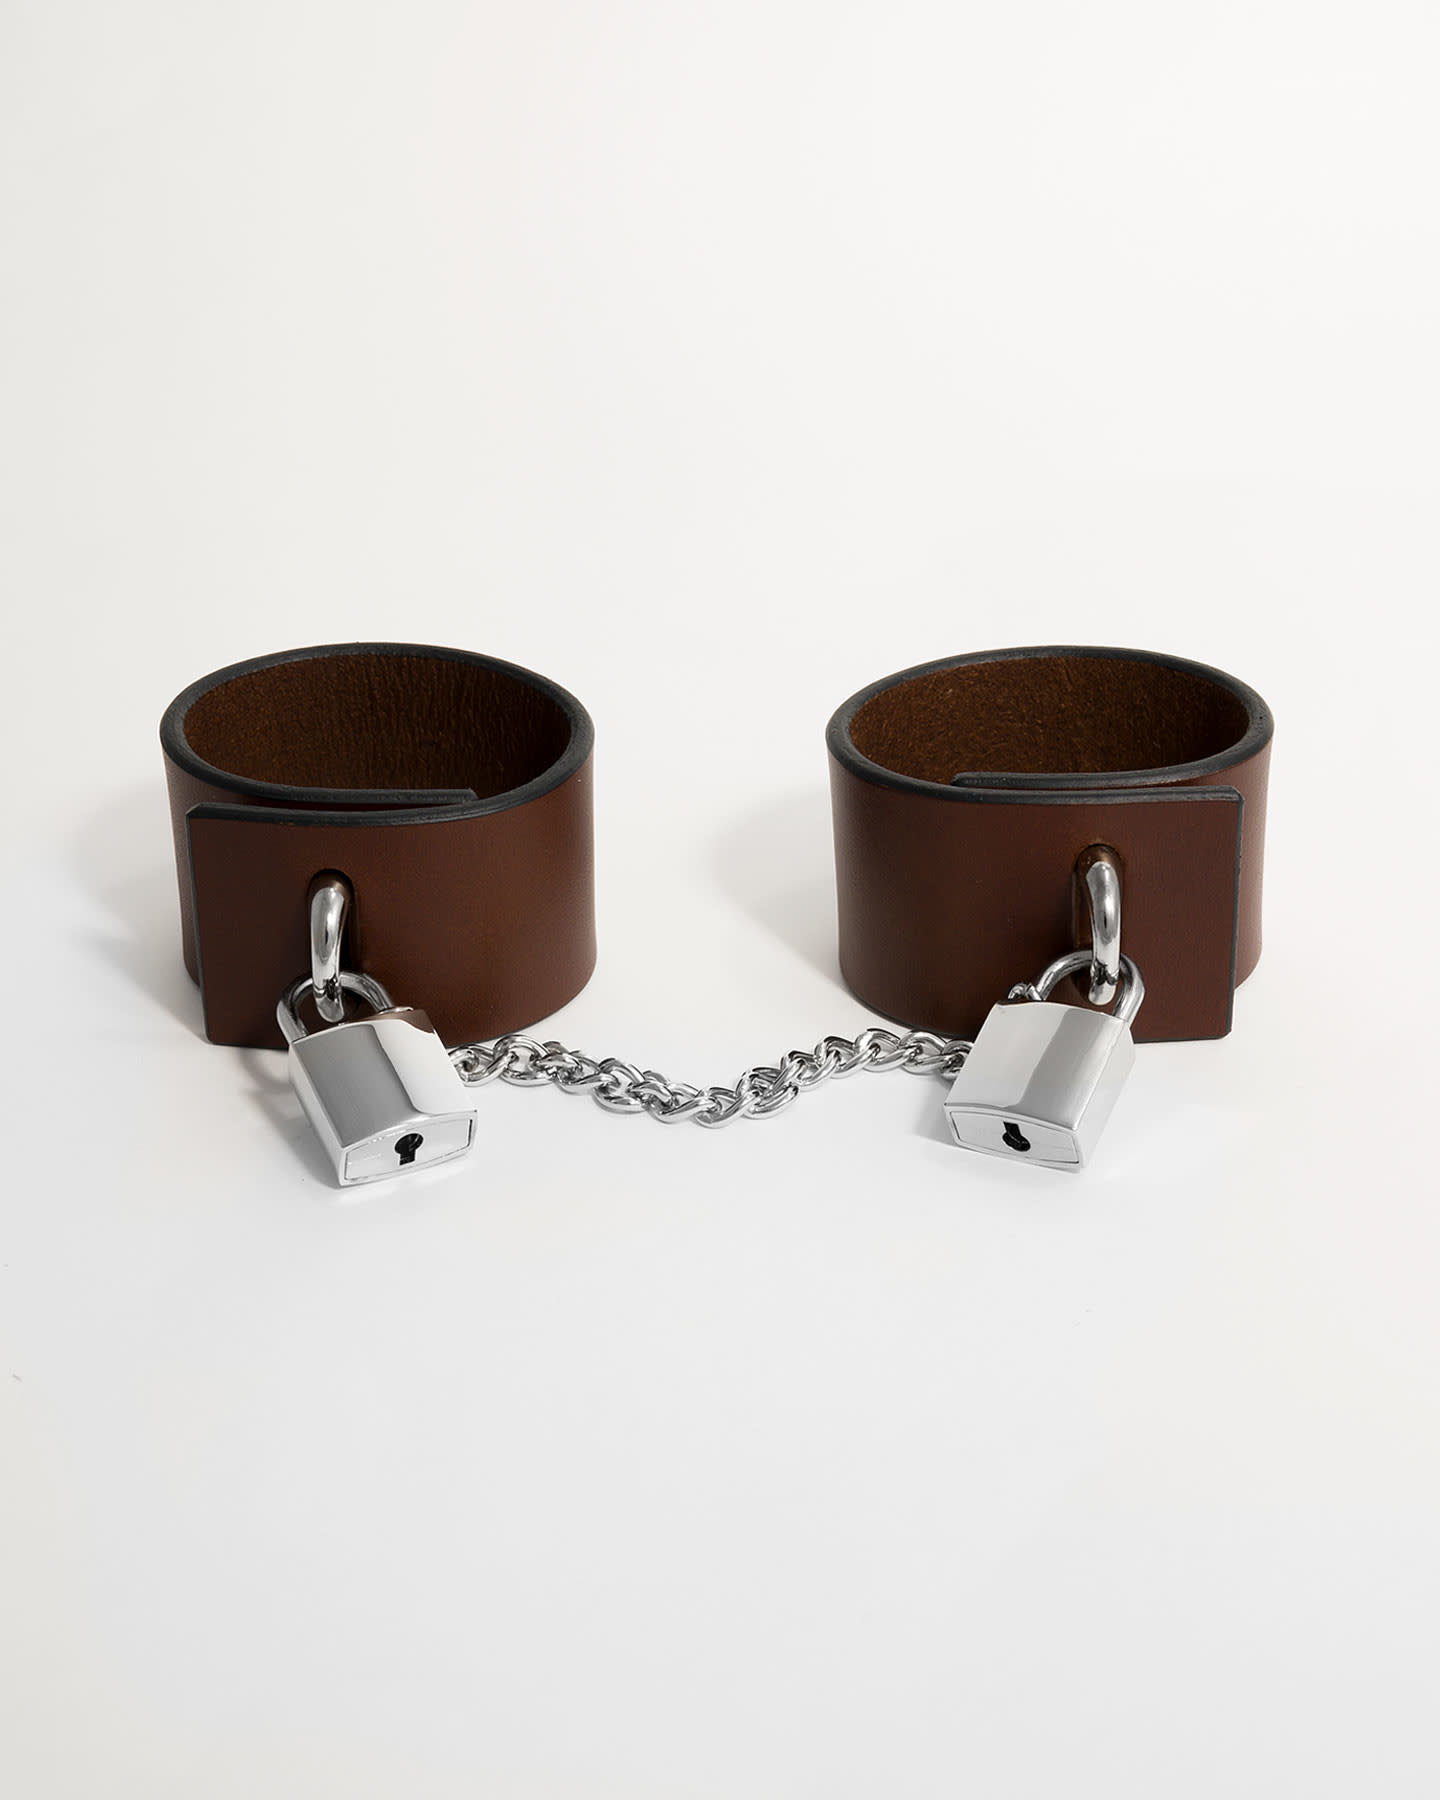 PADLOCK CUFFS WITH CHAIN - BROWN/SILVER